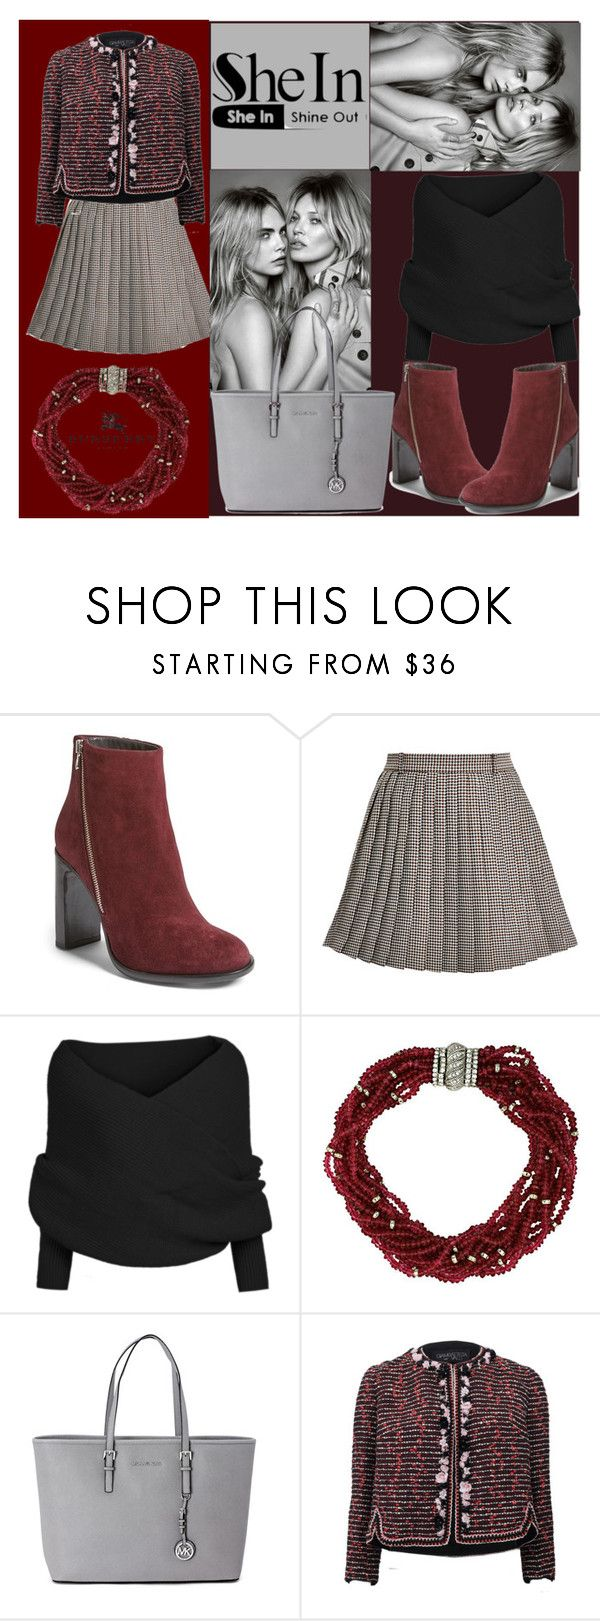 SHE IN (CONTEST) by denisa-marcu on Polyvore featuring Giambattista Valli, Thom Browne, rag & bone, Michael Kors, Ciner, Burberry, michaelkors, ragandbone and THomBrowne